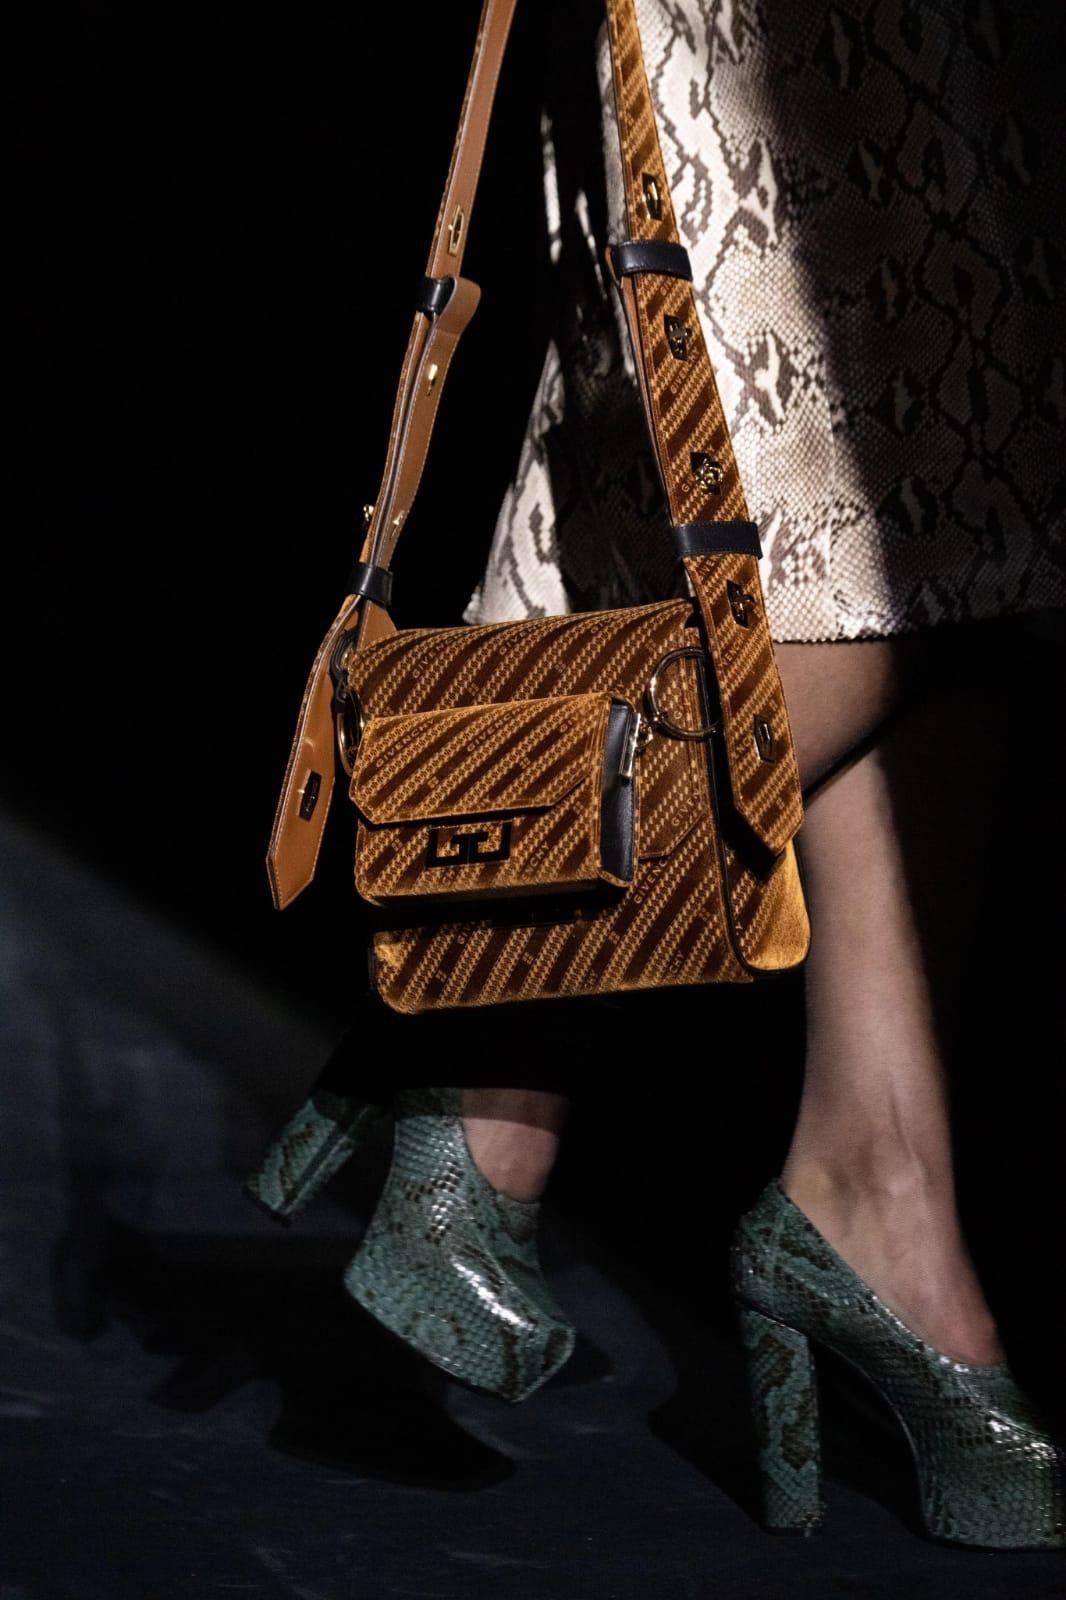 Givenchy launches Its Newest Bag